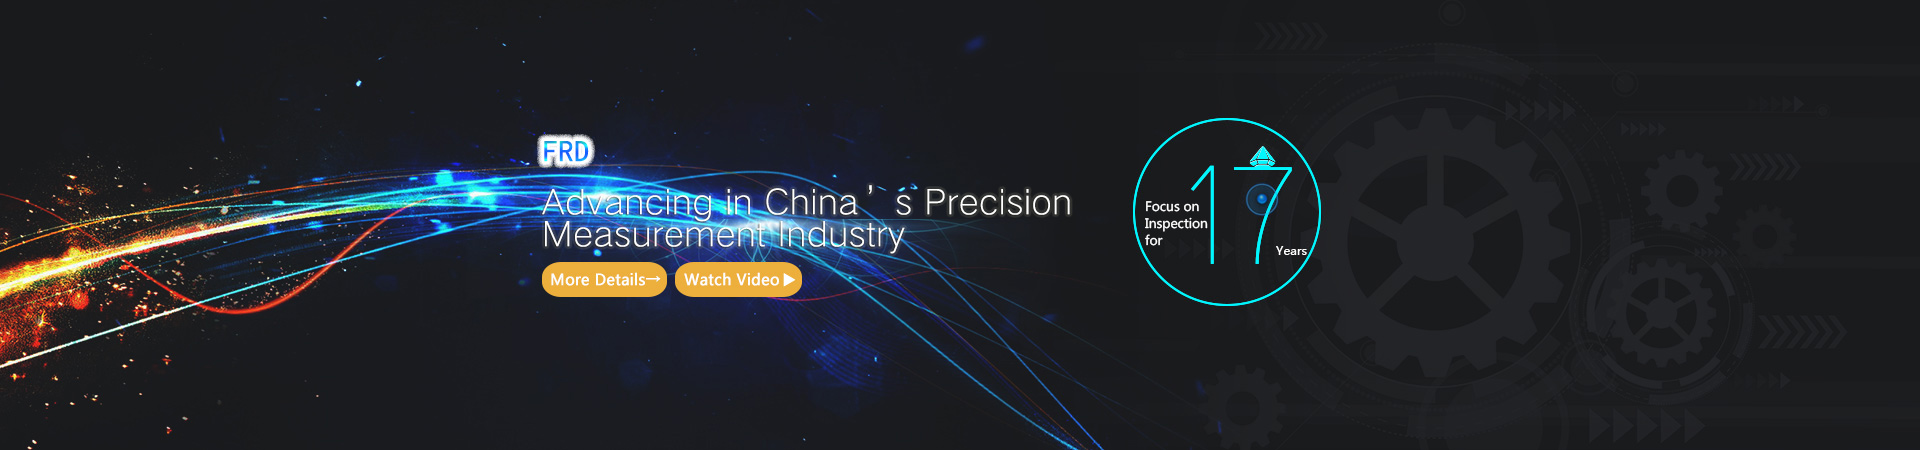 Advancing in China's Precision Measurement Industry